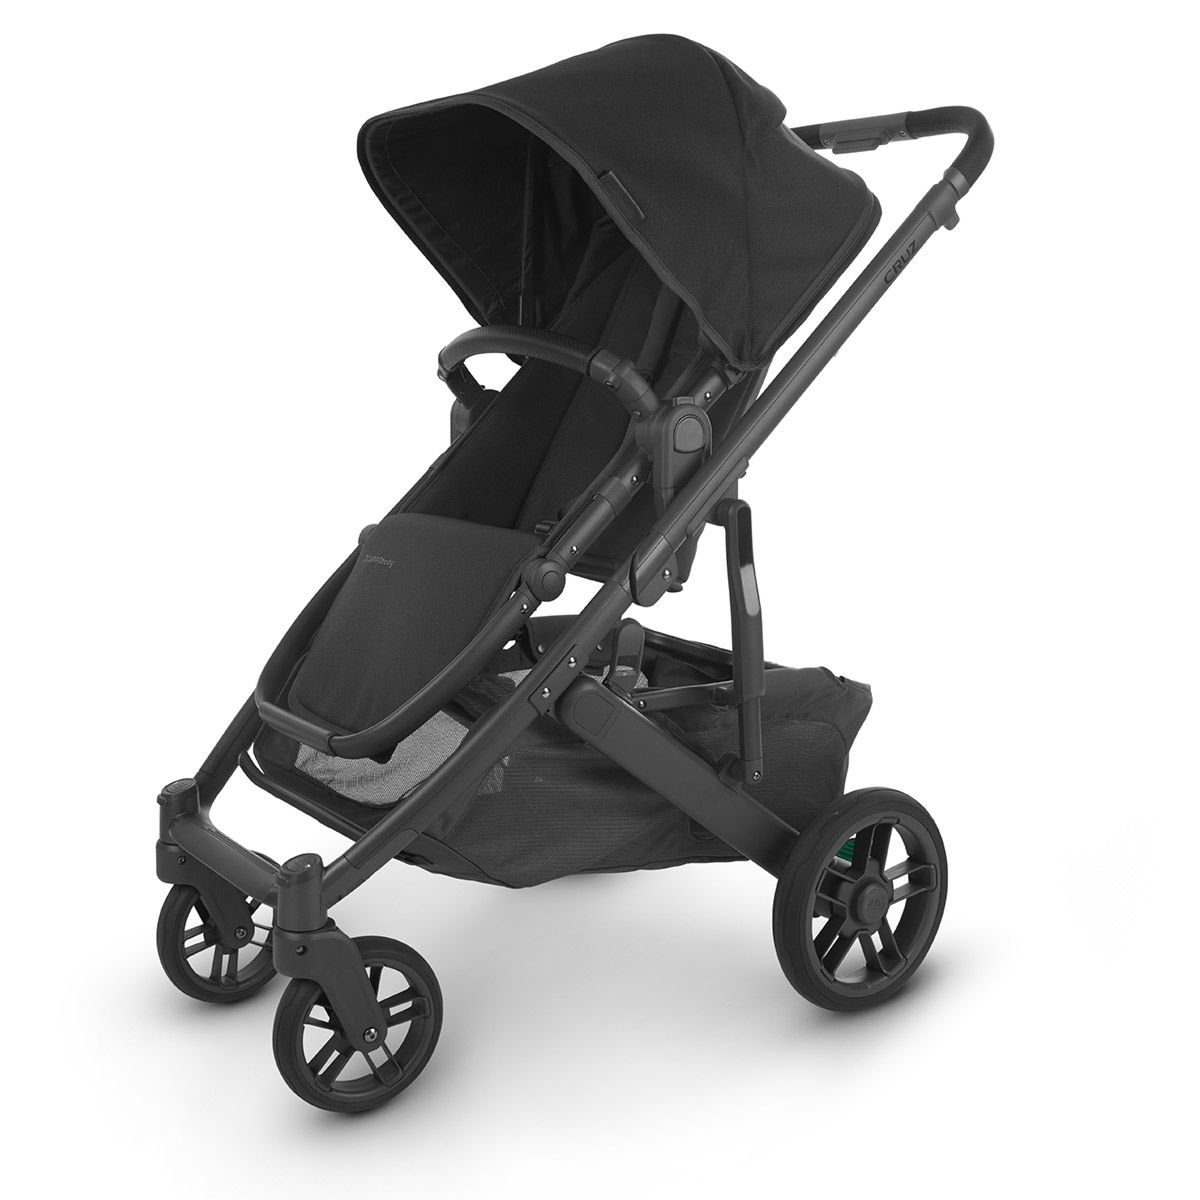 UPPABaby CRUZ V2 Stroller - JAKE (Black/Carbon/Black Leather)